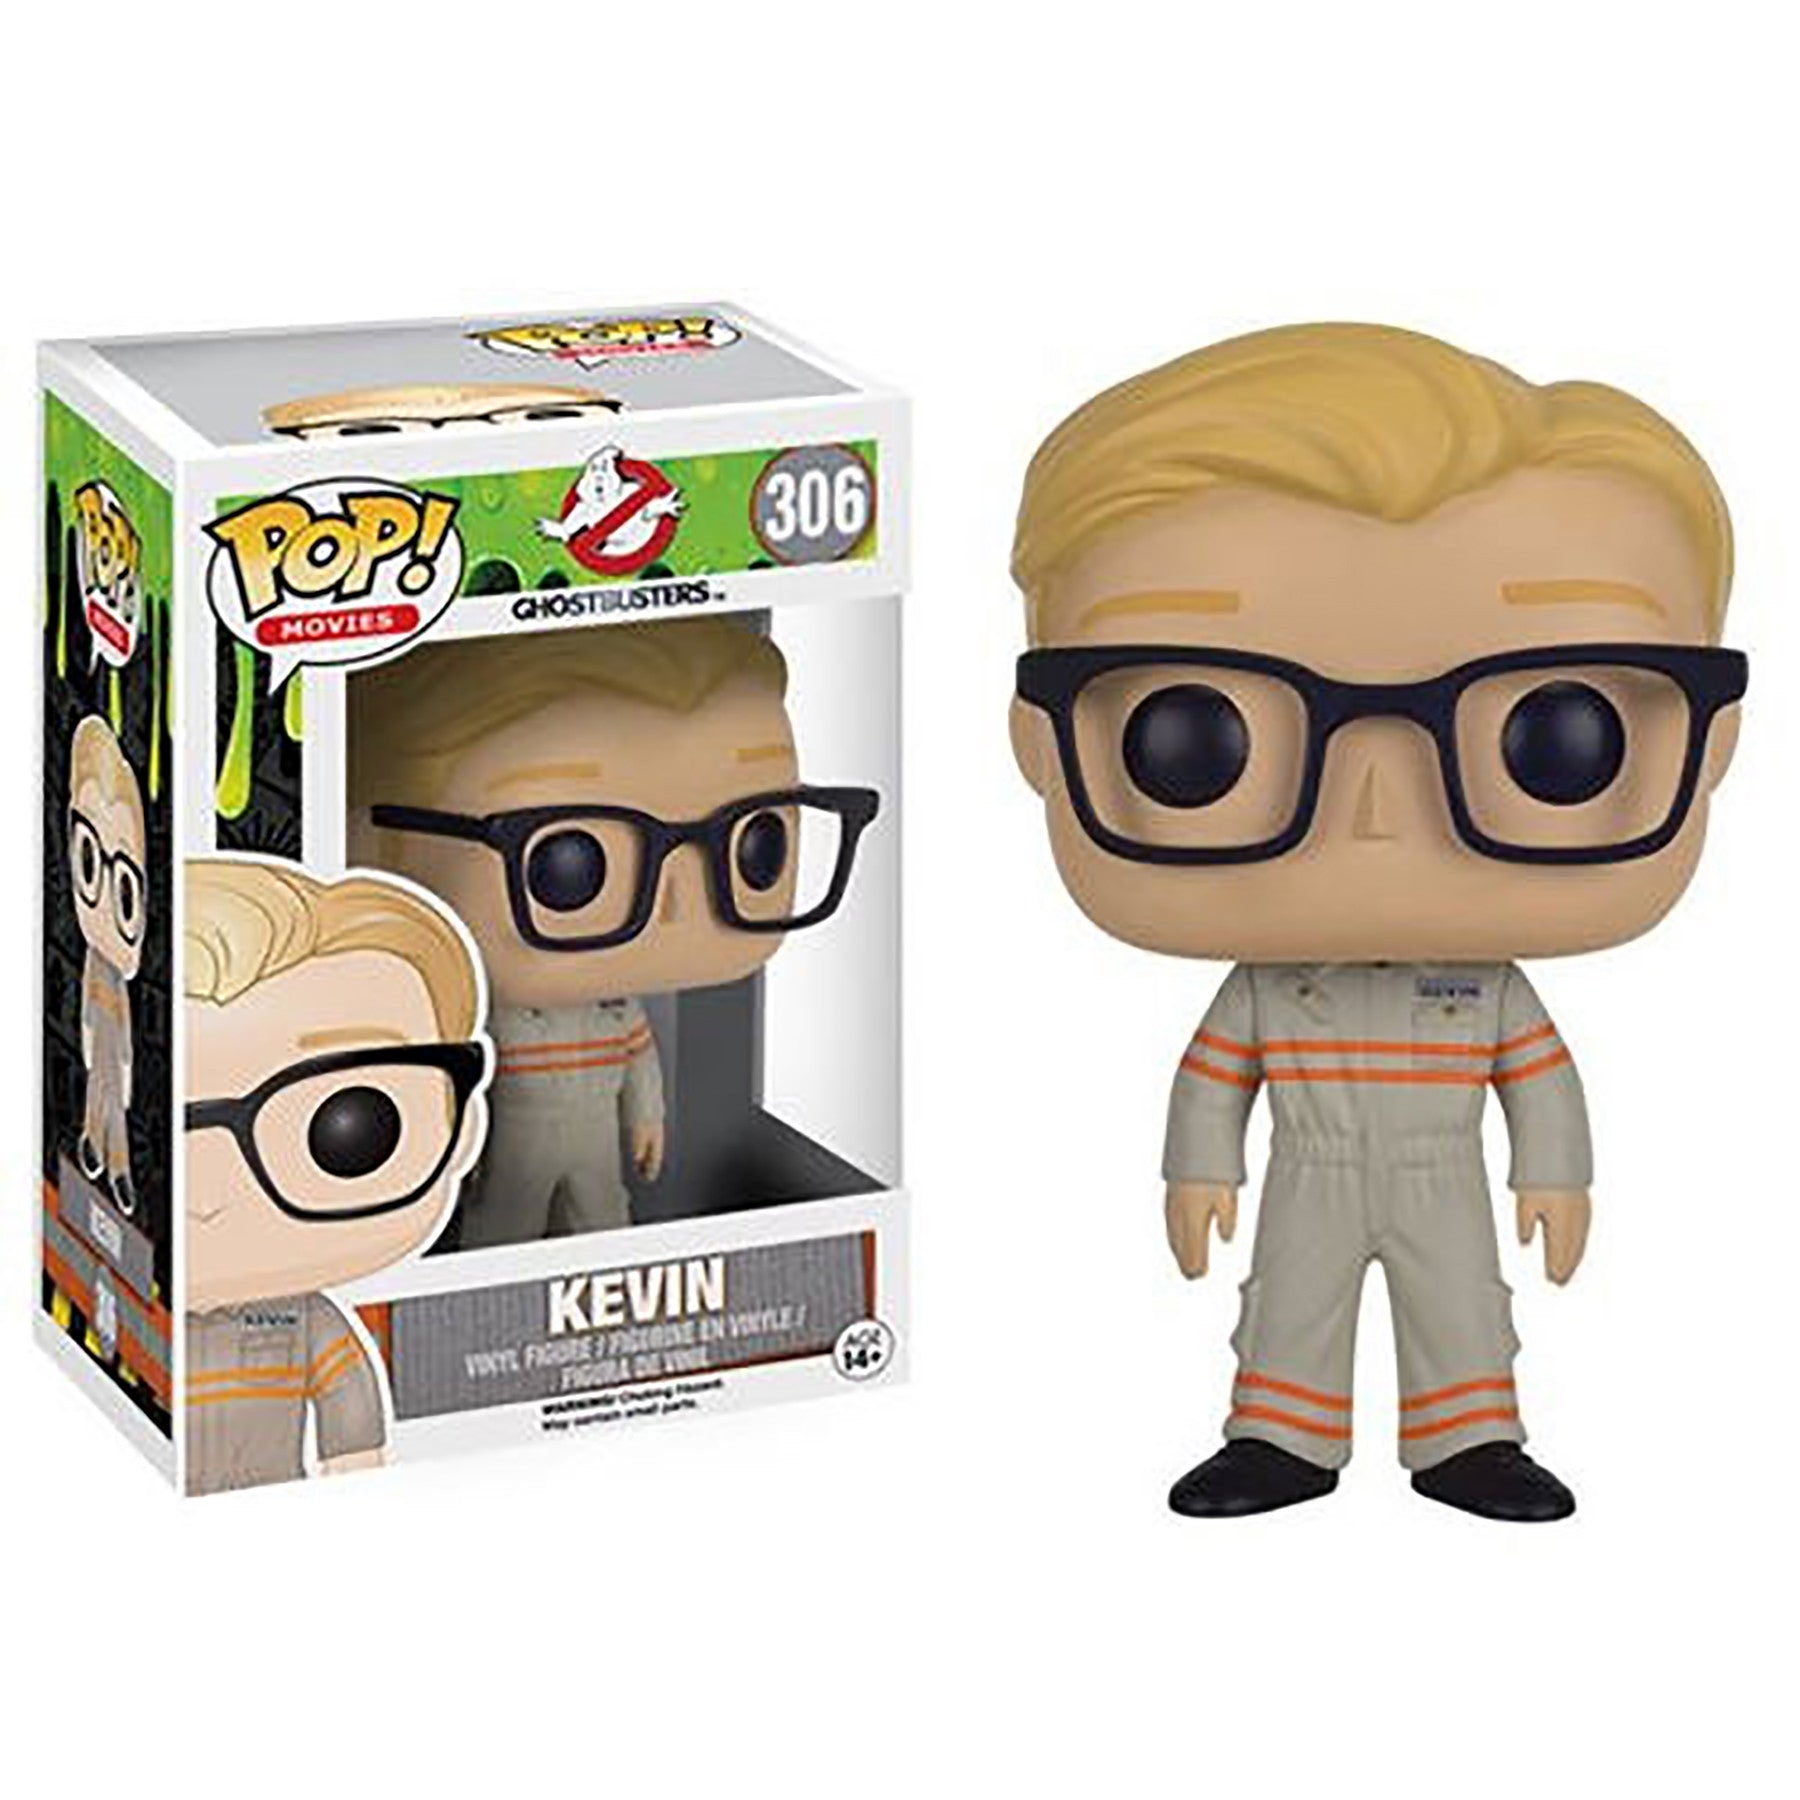 POP - Ghostbusters 2016 - Kevin